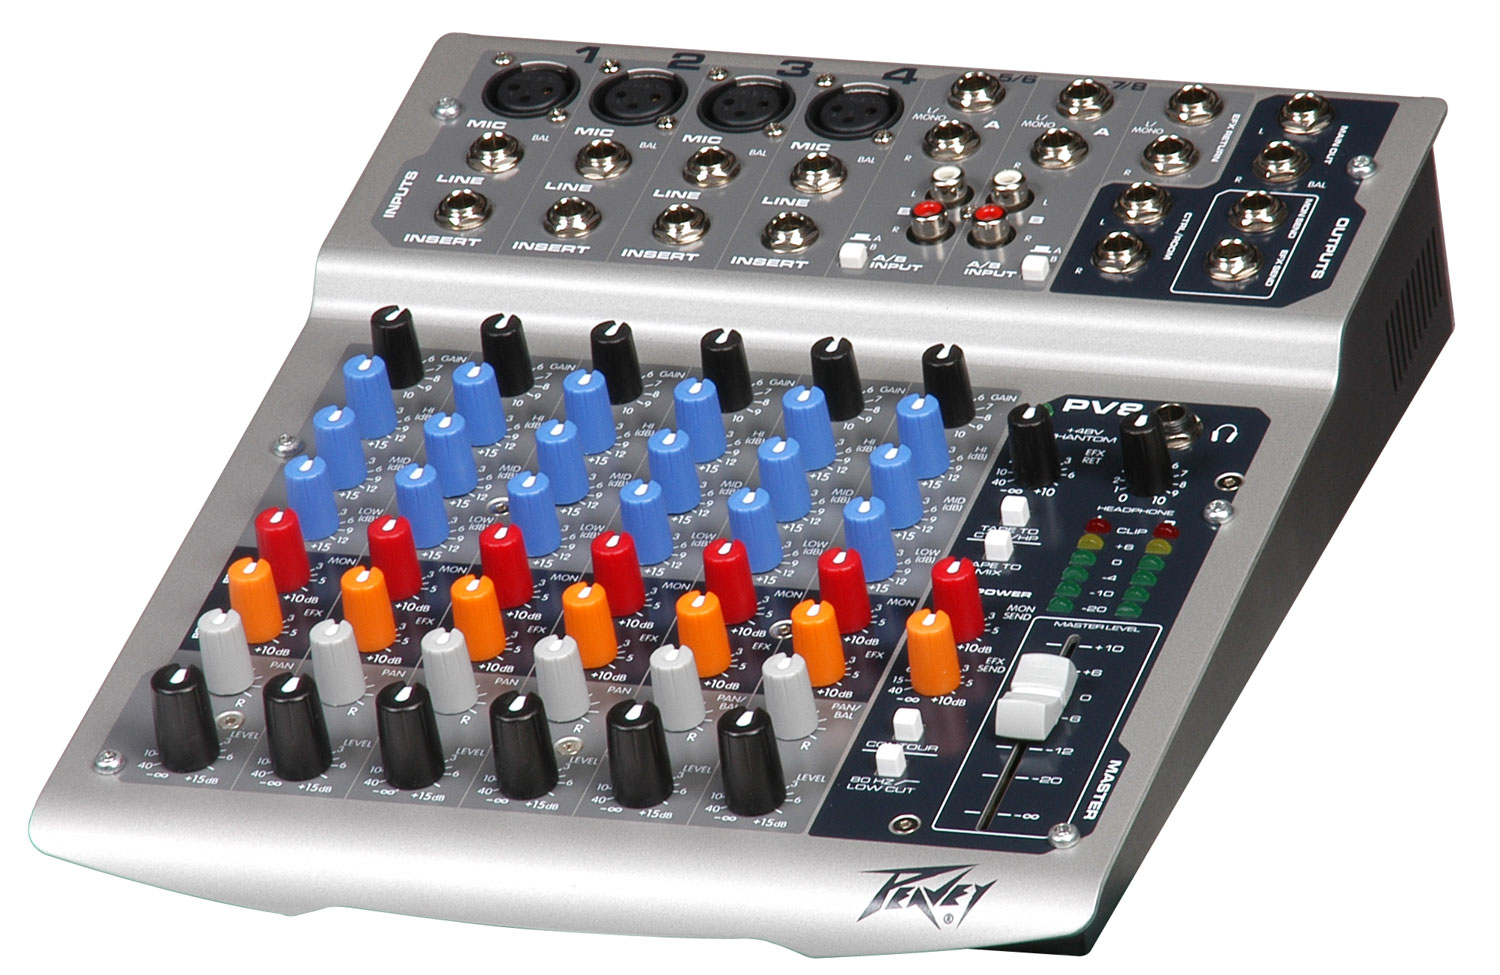 peavey pv 8 compact mixer w dual switchable stereo line inputs eq pev13 512040 rs. Black Bedroom Furniture Sets. Home Design Ideas